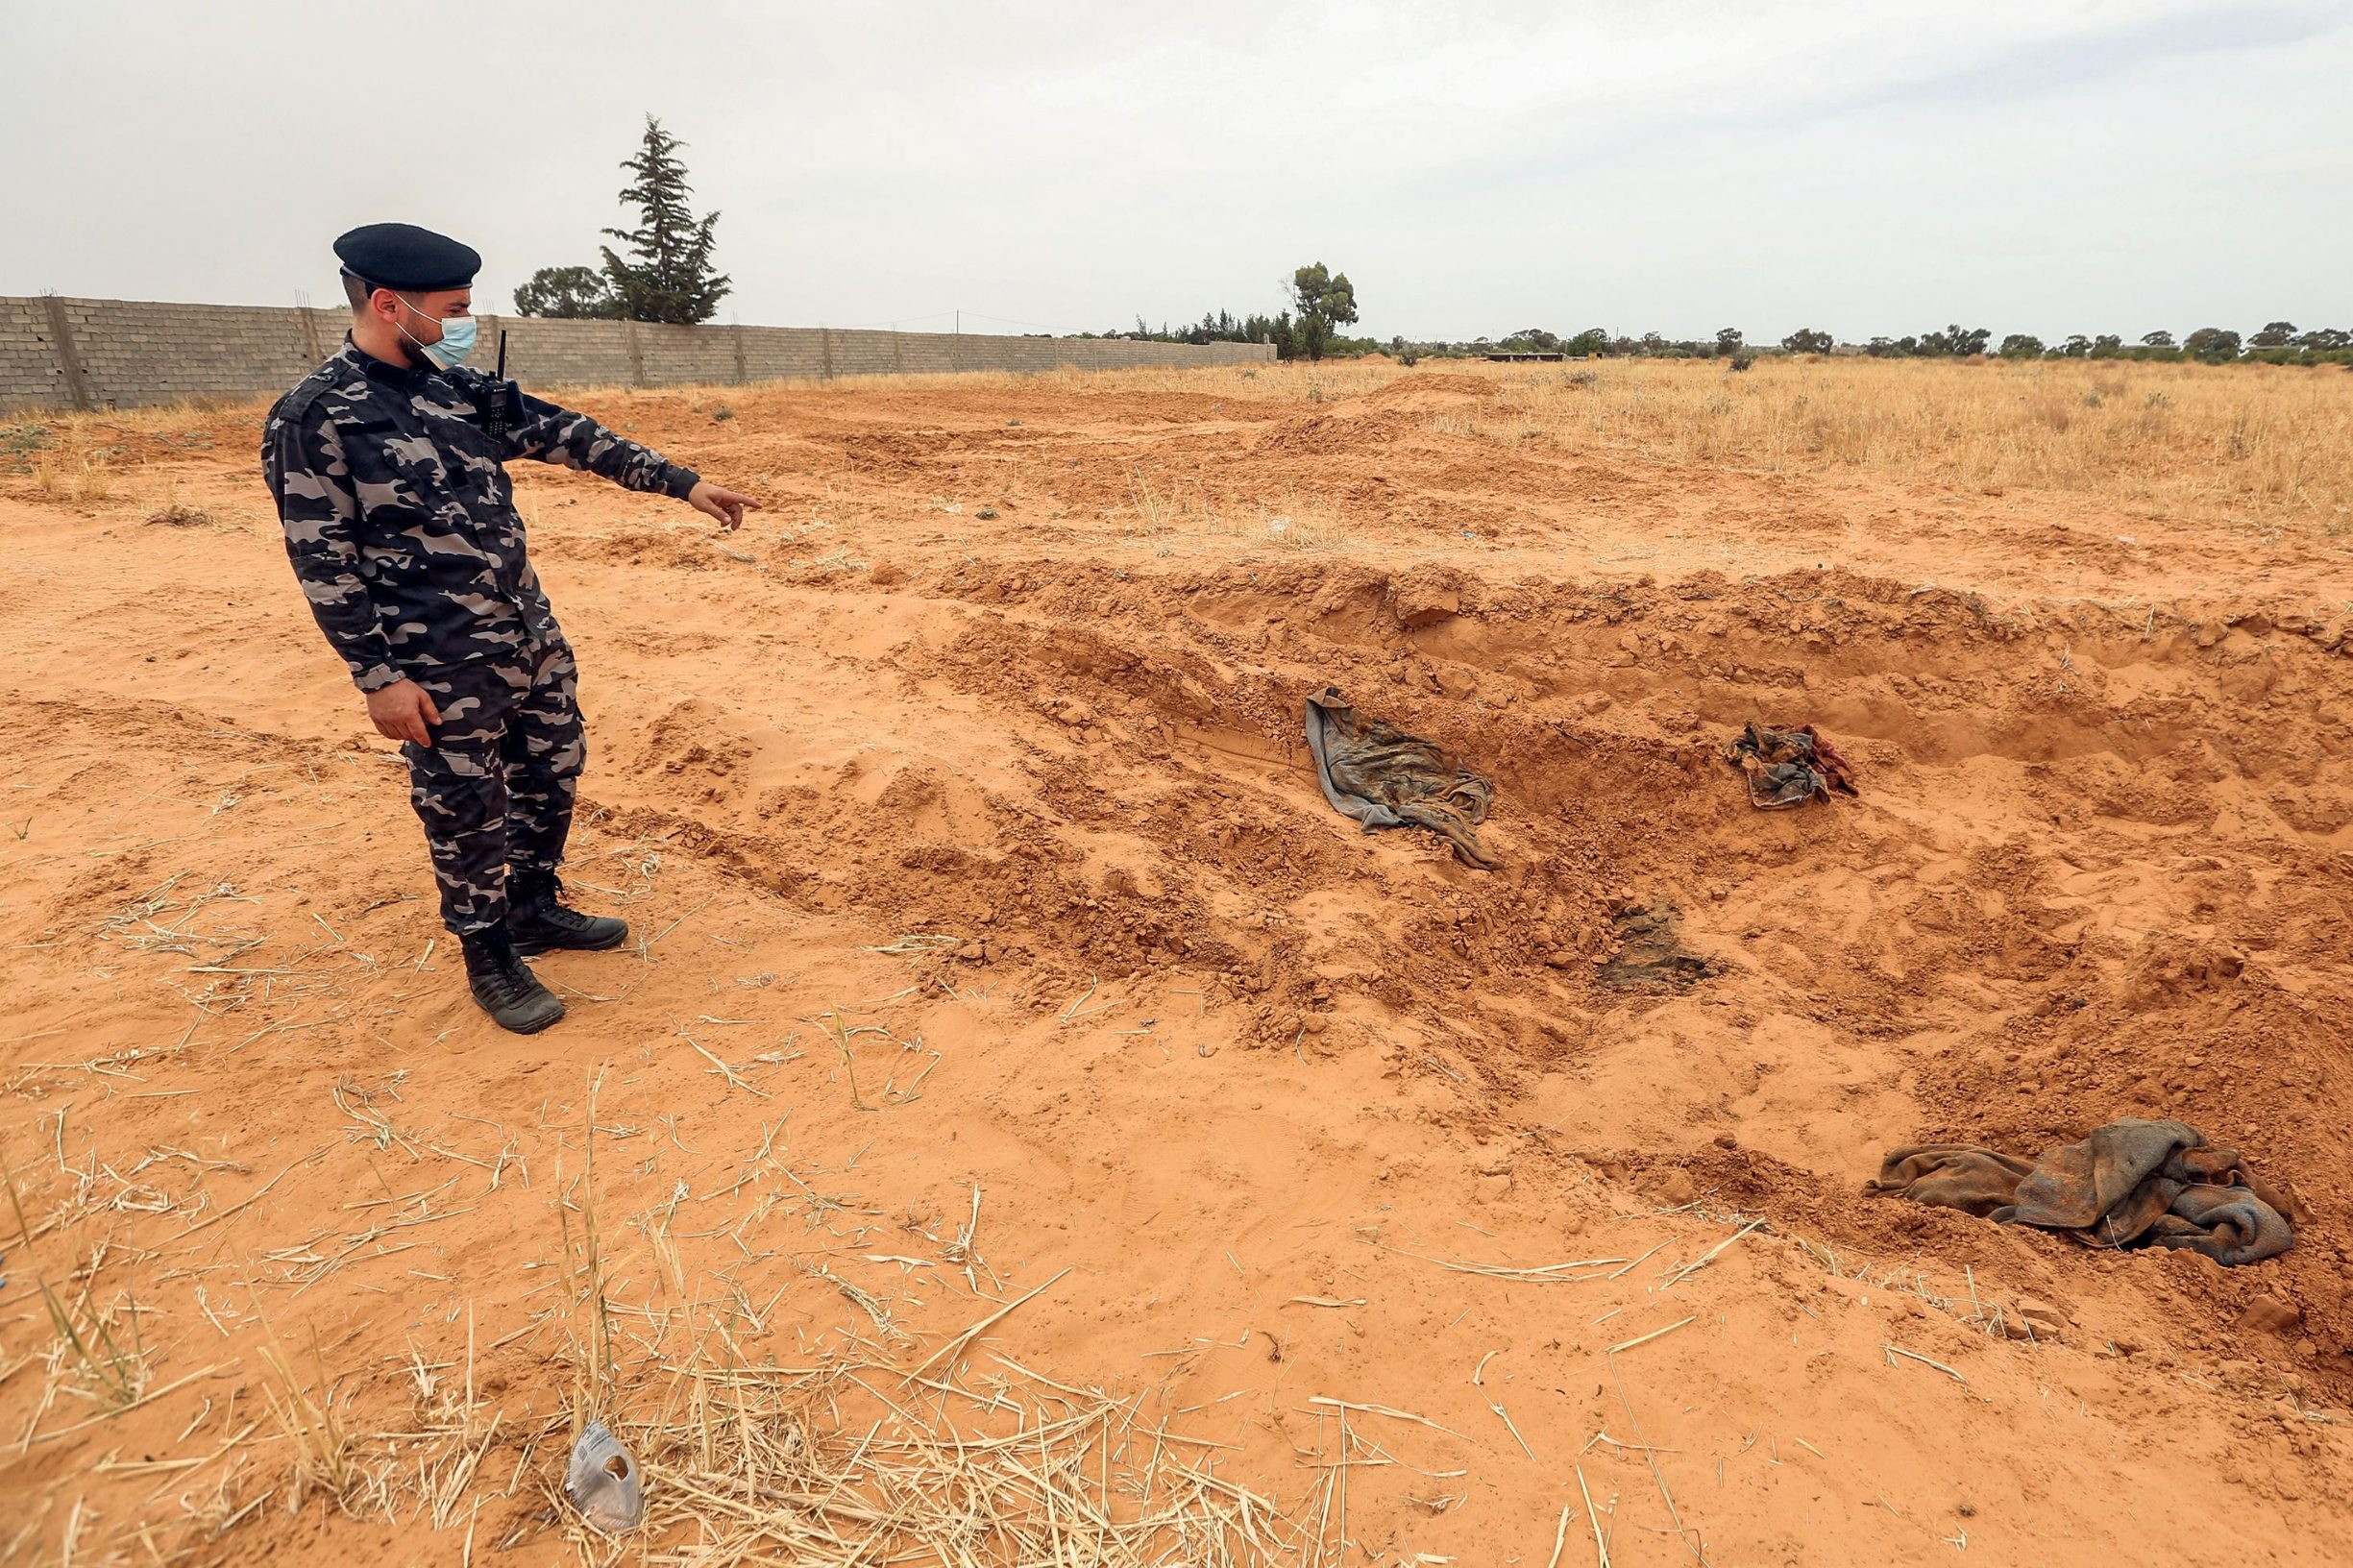 A member of security forces affiliated with the Libyan Government of National Accord (GNA)'s Interior Ministry stands at the reported site of a mass grave in the town of Tarhuna, about 65 kilometres southeast of the capital Tripoli on June 11, 2020. - The United Nations mission to Libya on June 11 voiced